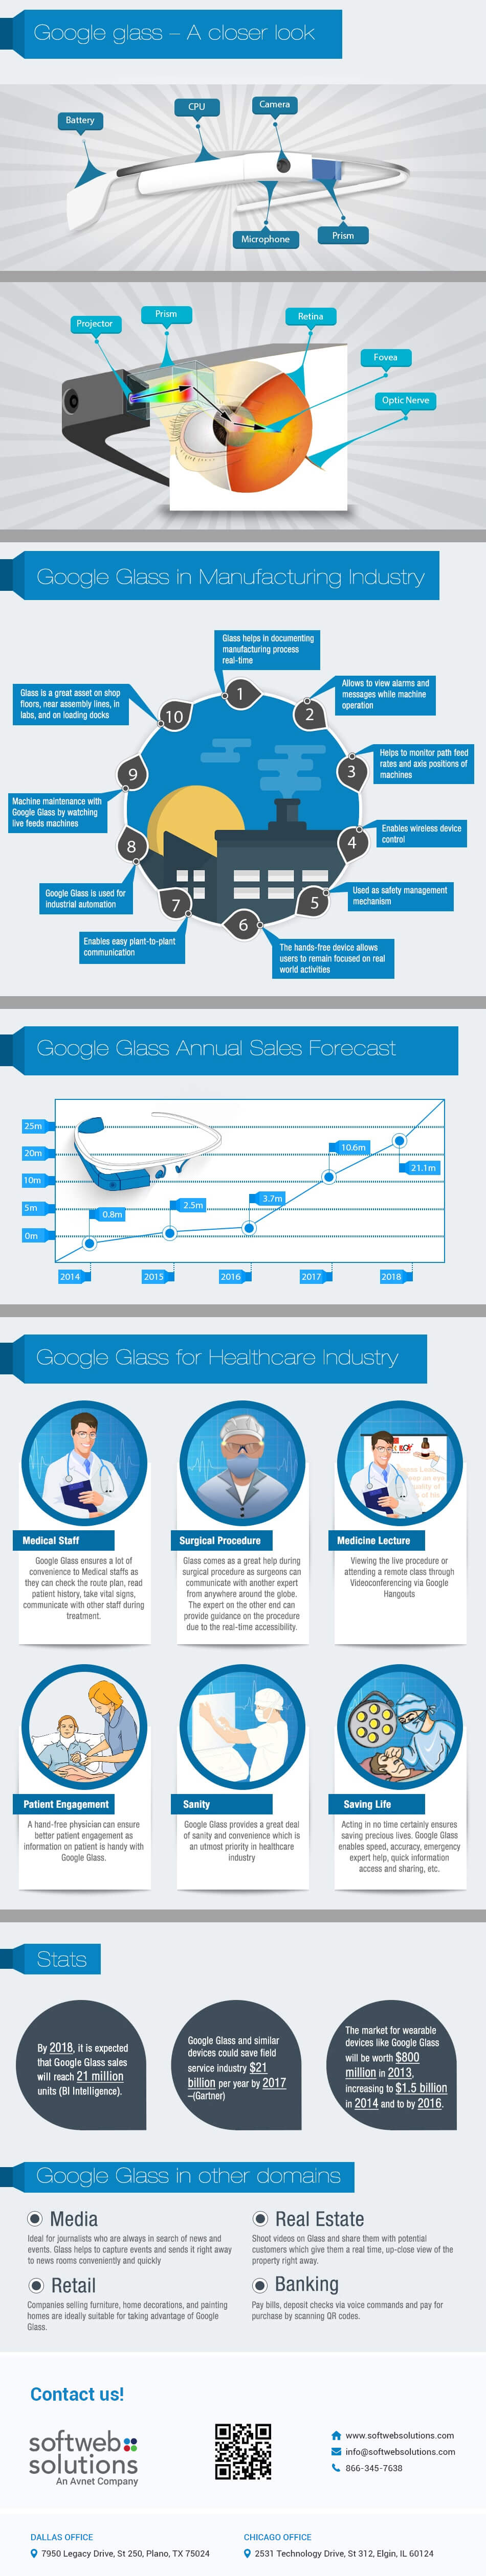 Google Glass in various industry